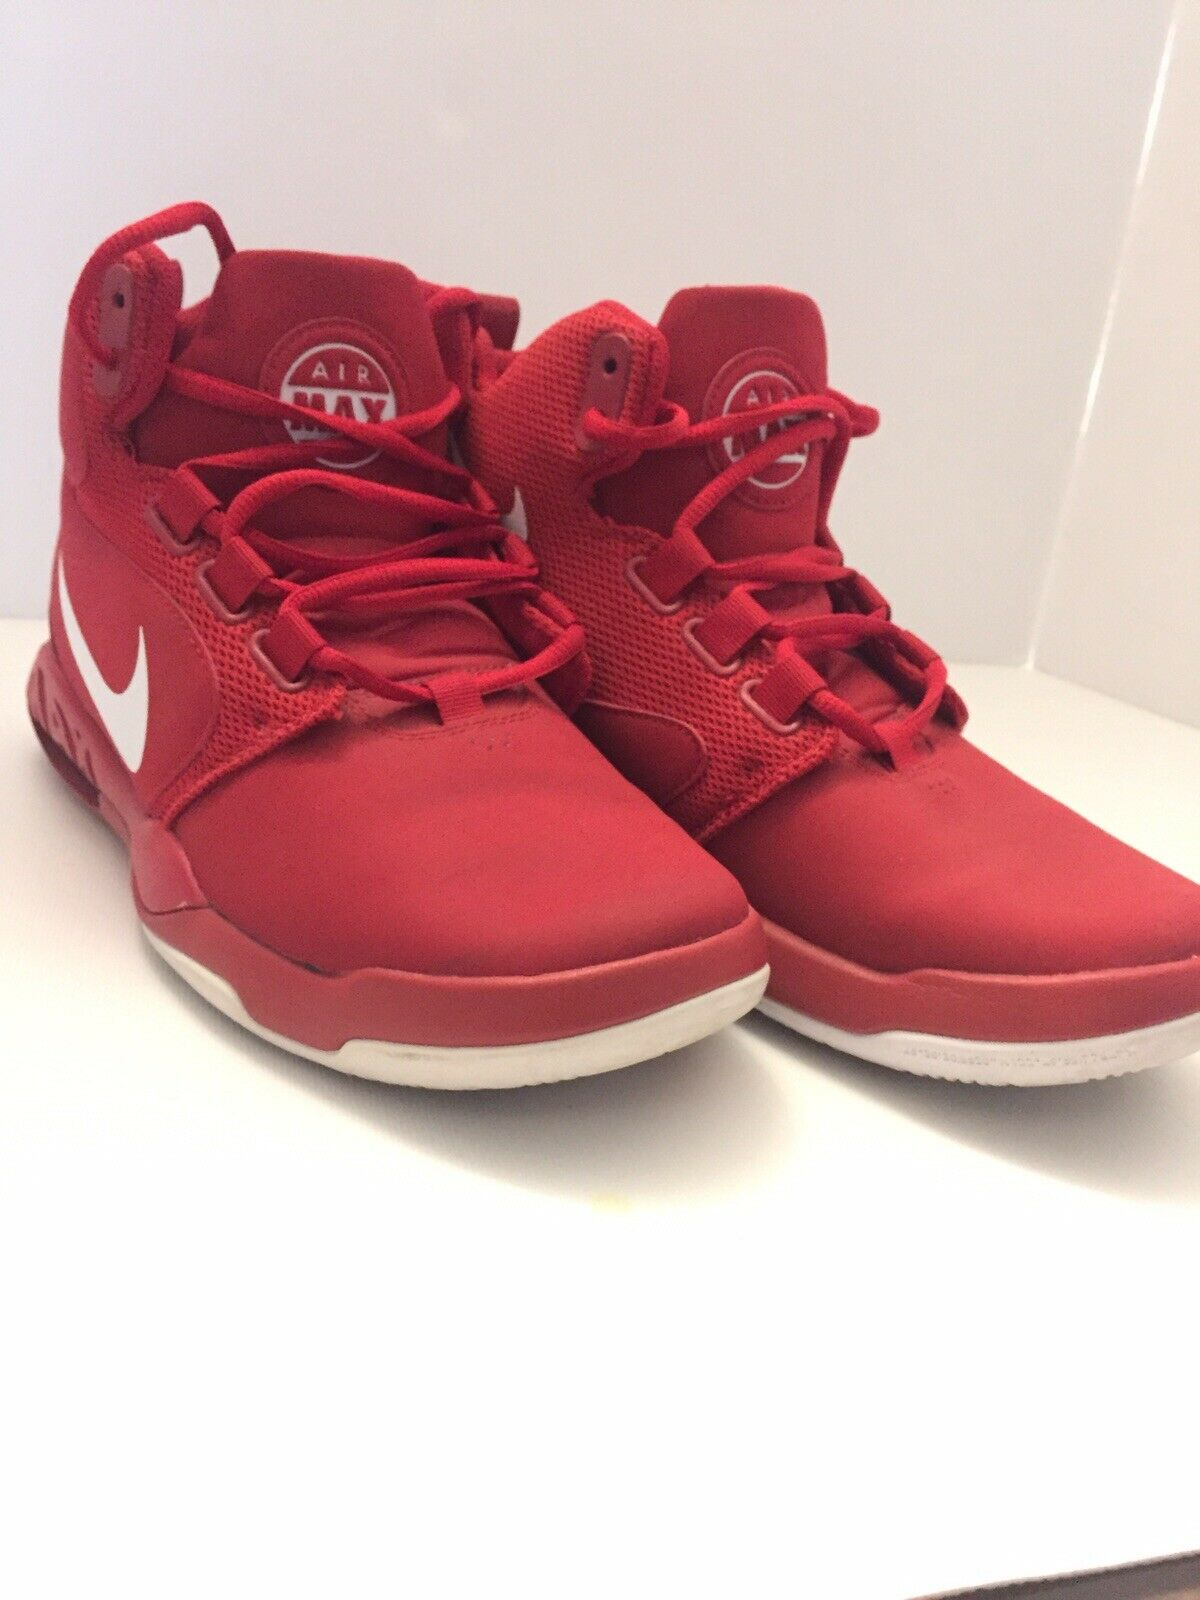 Nike Air Max CONVERSION Varsity Red On Red US Size 7.5 861678 601